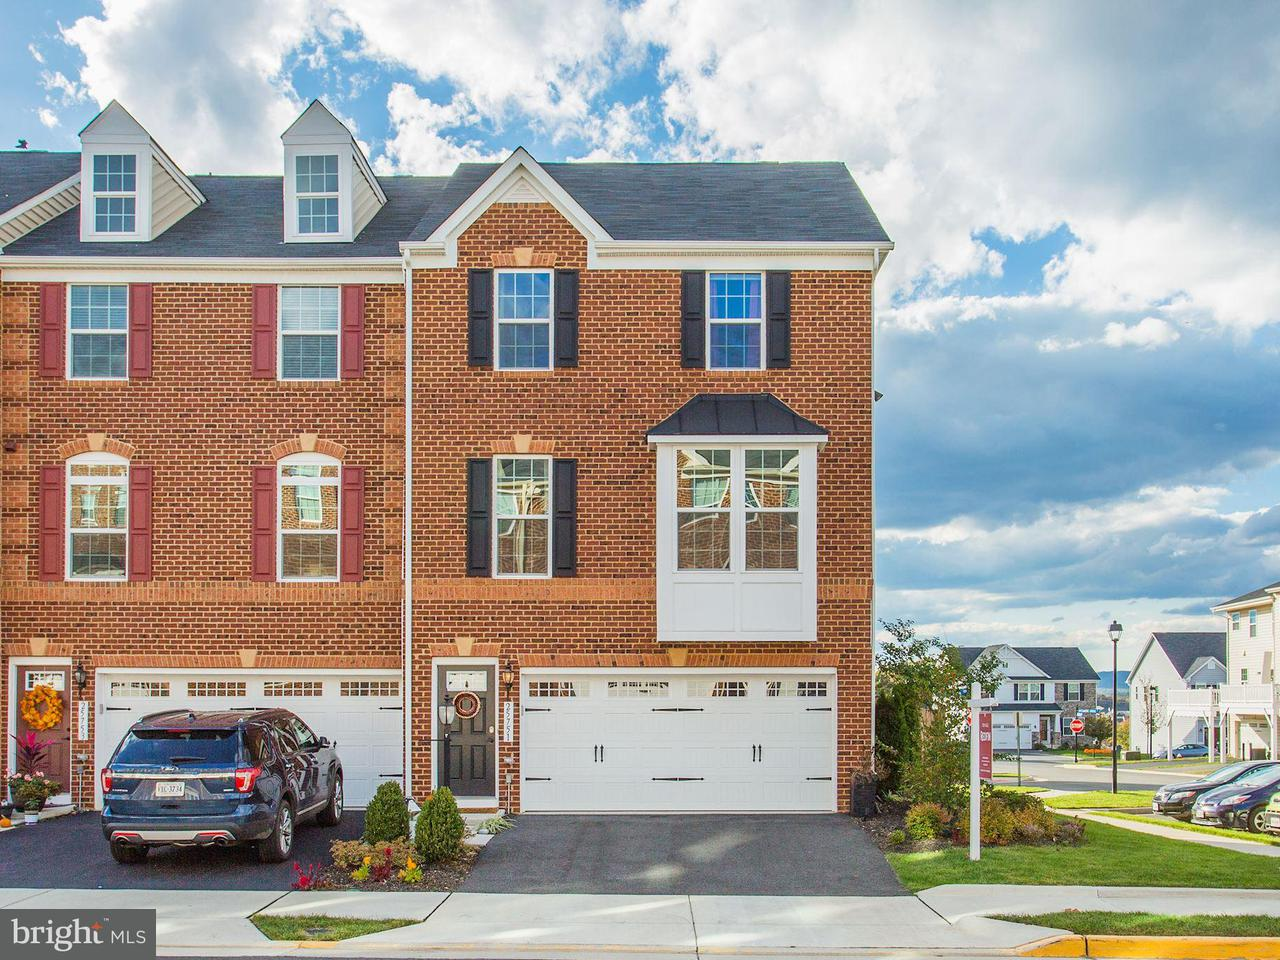 Townhouse for Sale at 25751 DOUBLE BRIDLE TER 25751 DOUBLE BRIDLE TER Aldie, Virginia 20105 United States